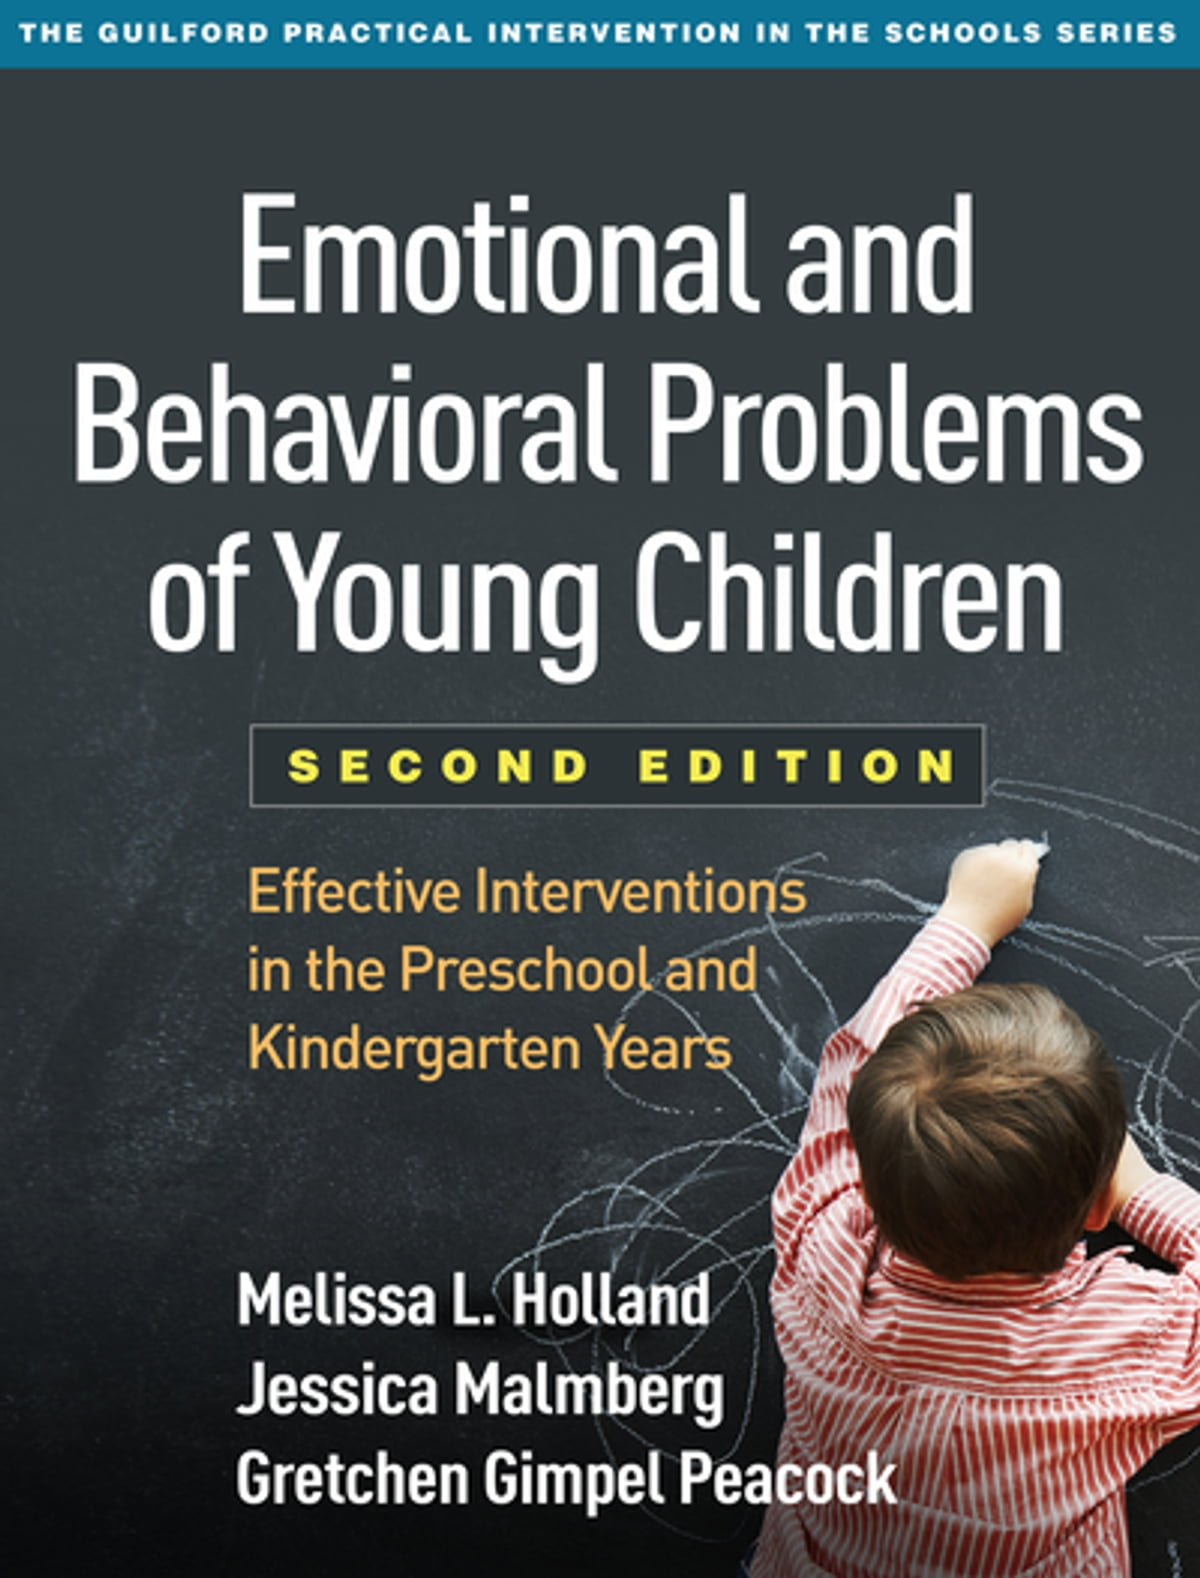 Workbooks dual diagnosis workbook free : Emotional and Behavioral Problems of Young Children, Second ...